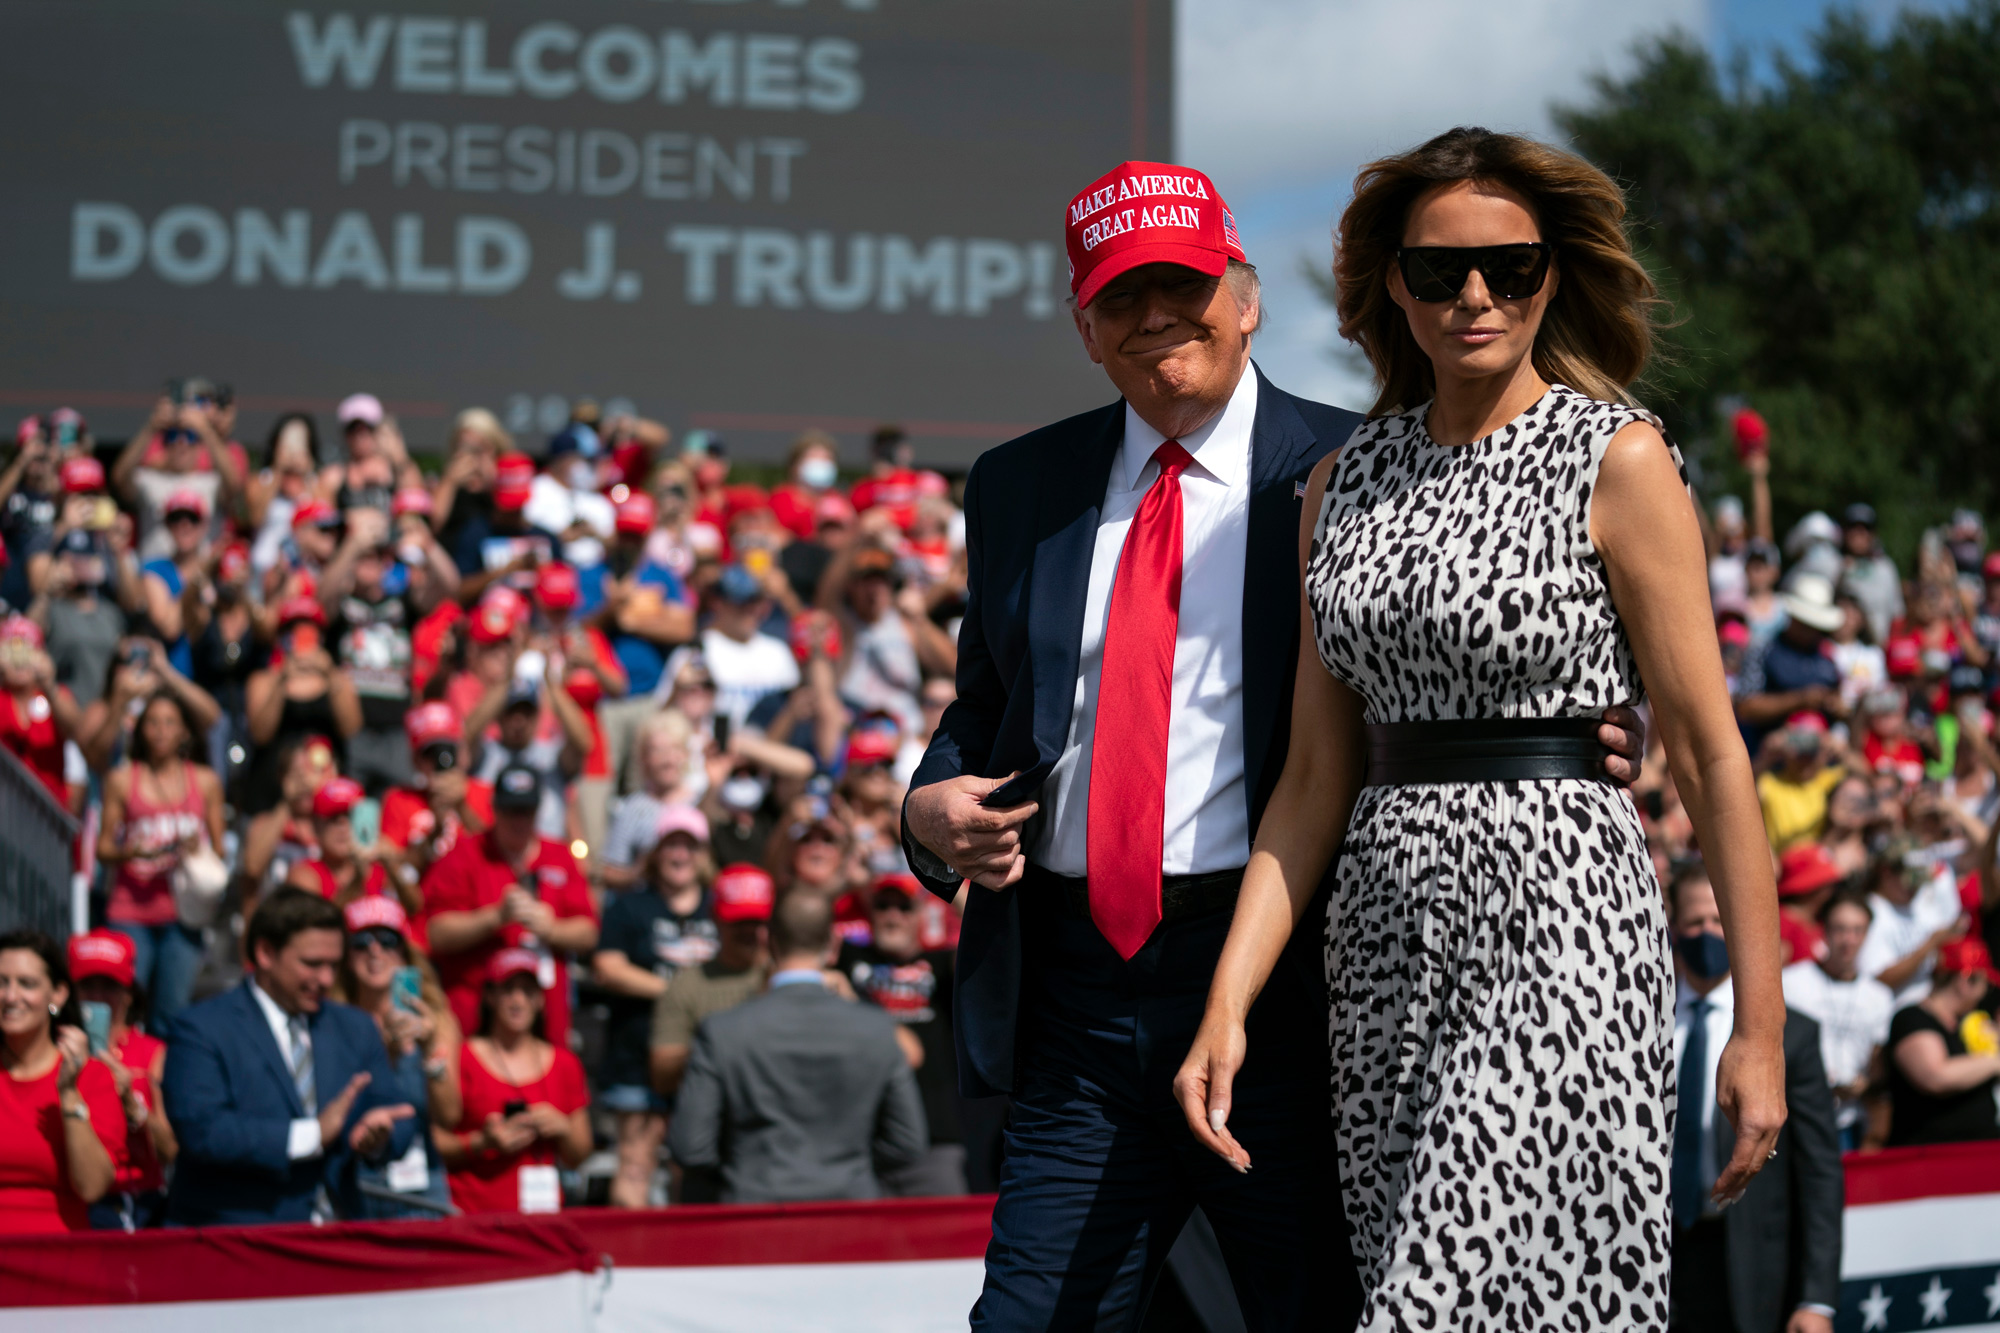 President Donald Trump and first lady Melania Trump arrive for a campaign rally outside Raymond James Stadium on October 29 in Tampa.